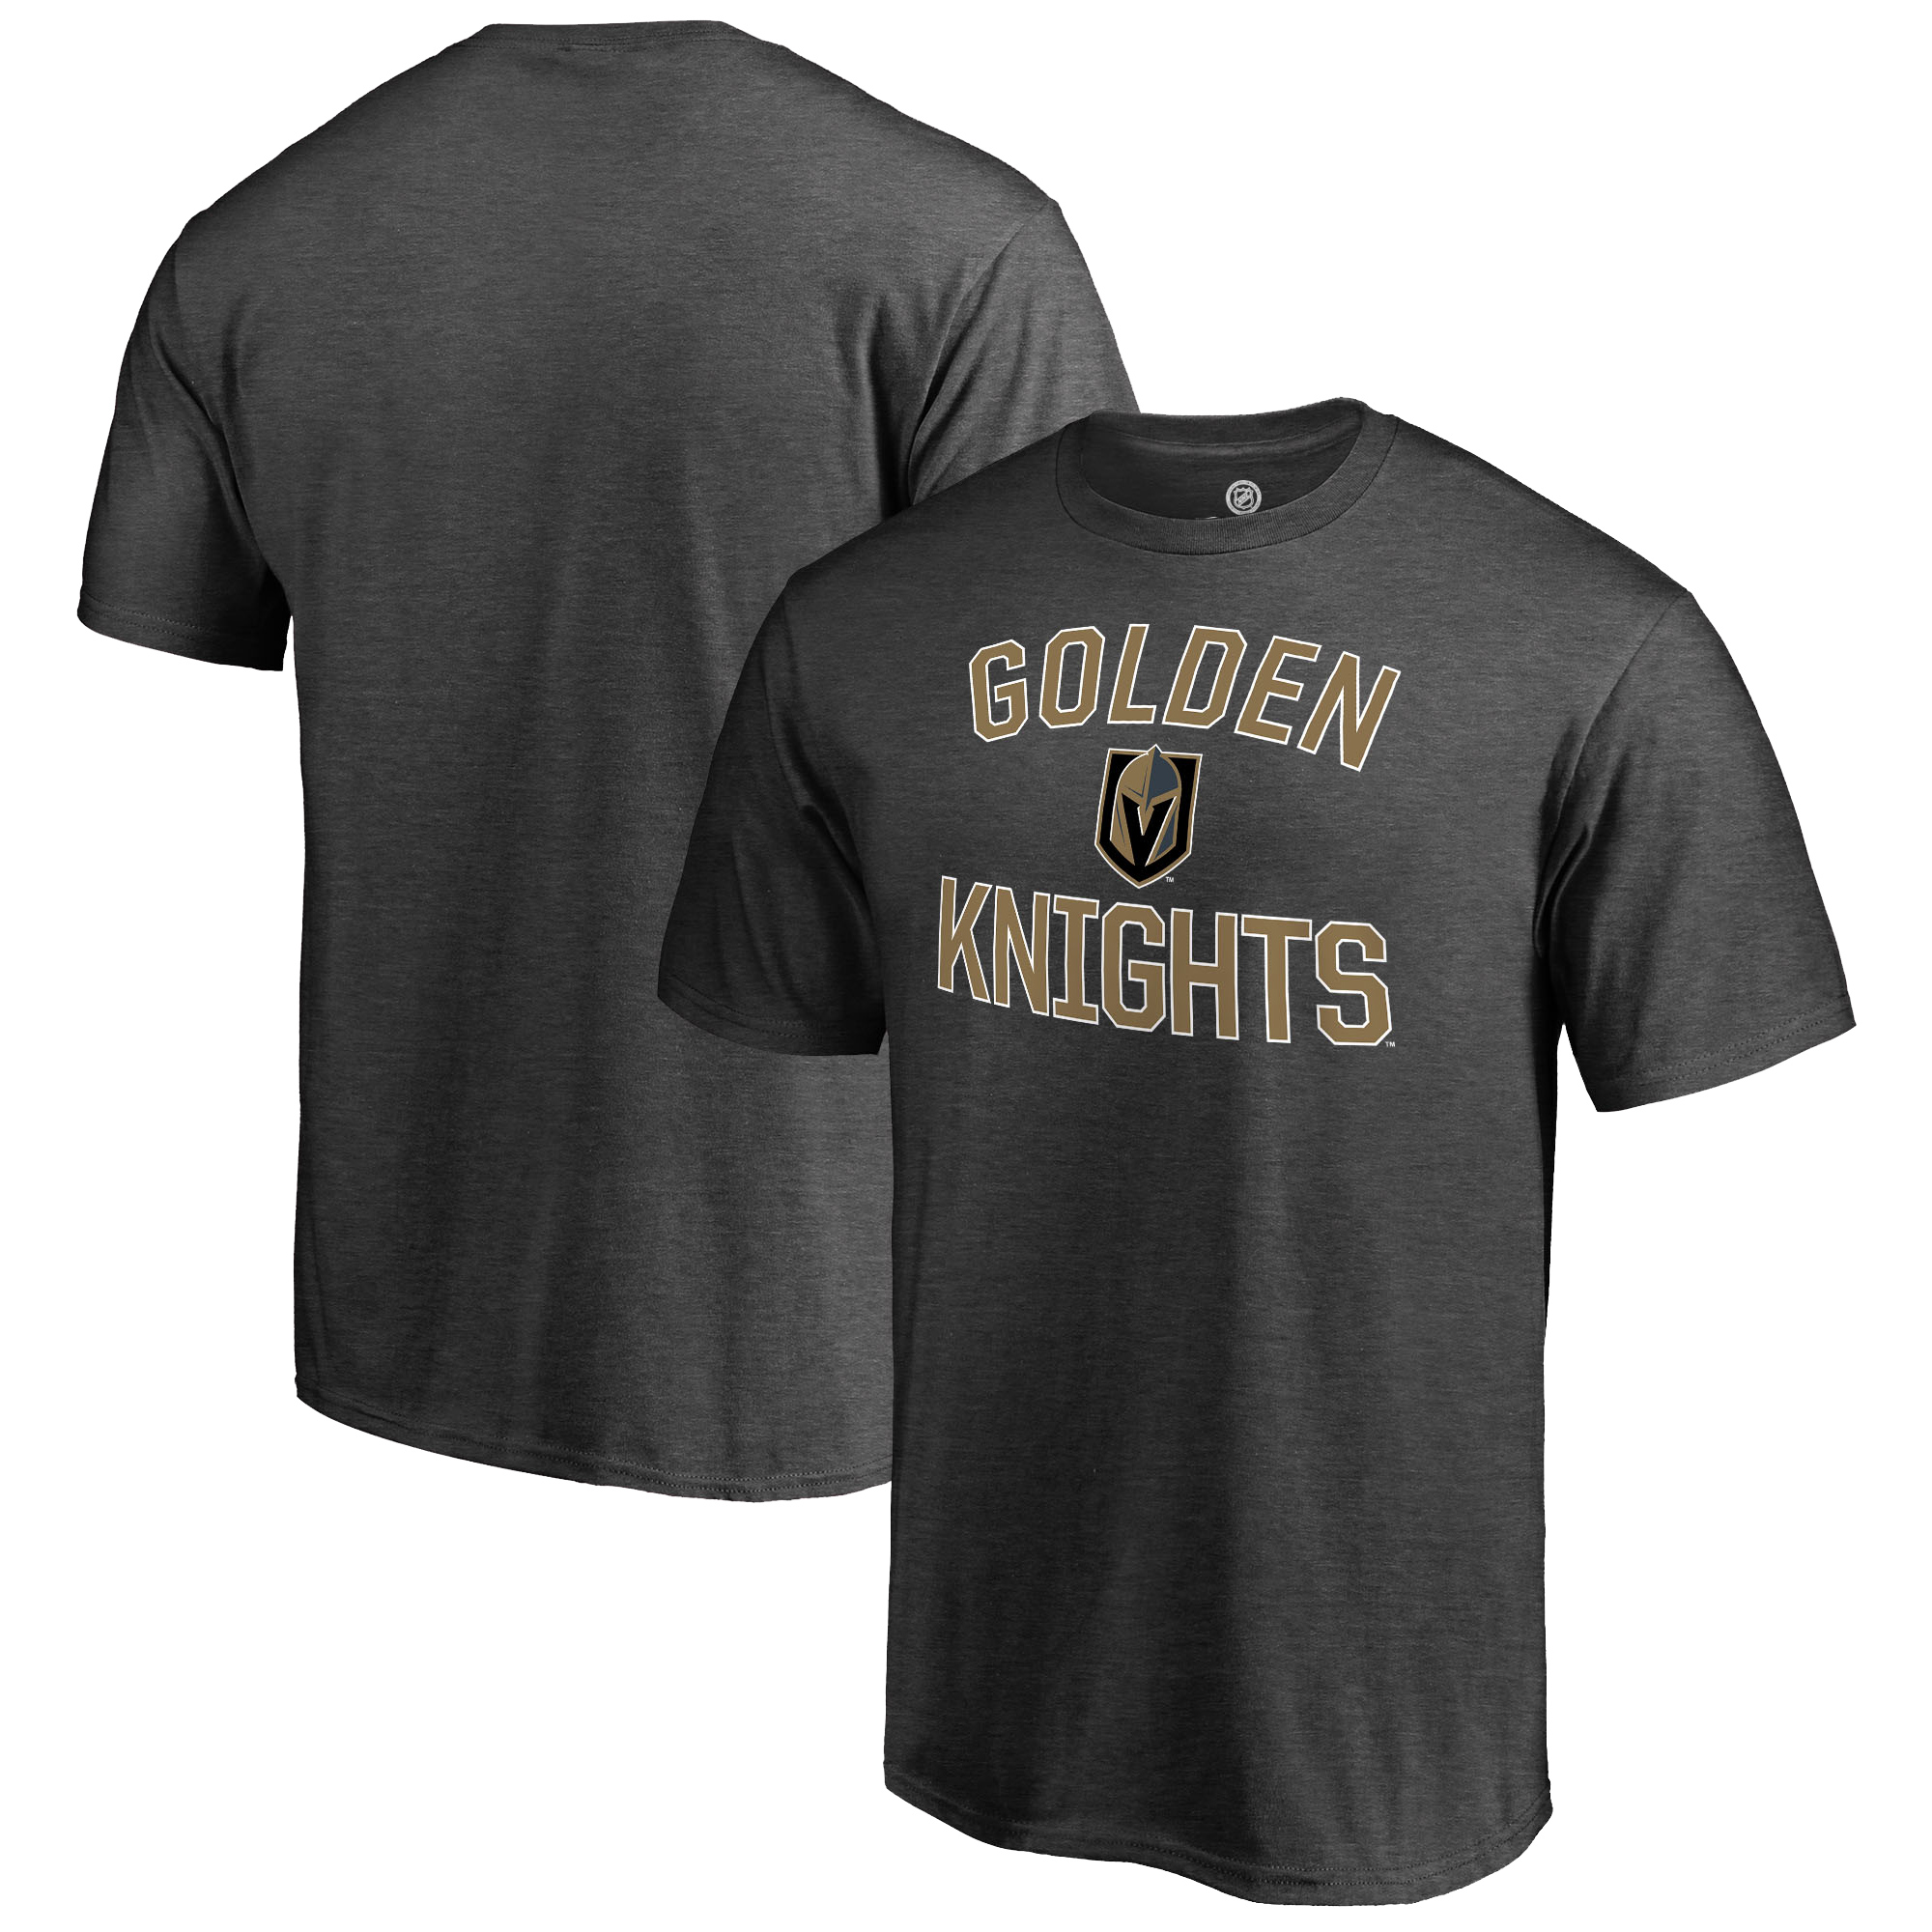 Vegas Golden Knights Fanatics Branded Victory Arch T-Shirt - Heathered Gray